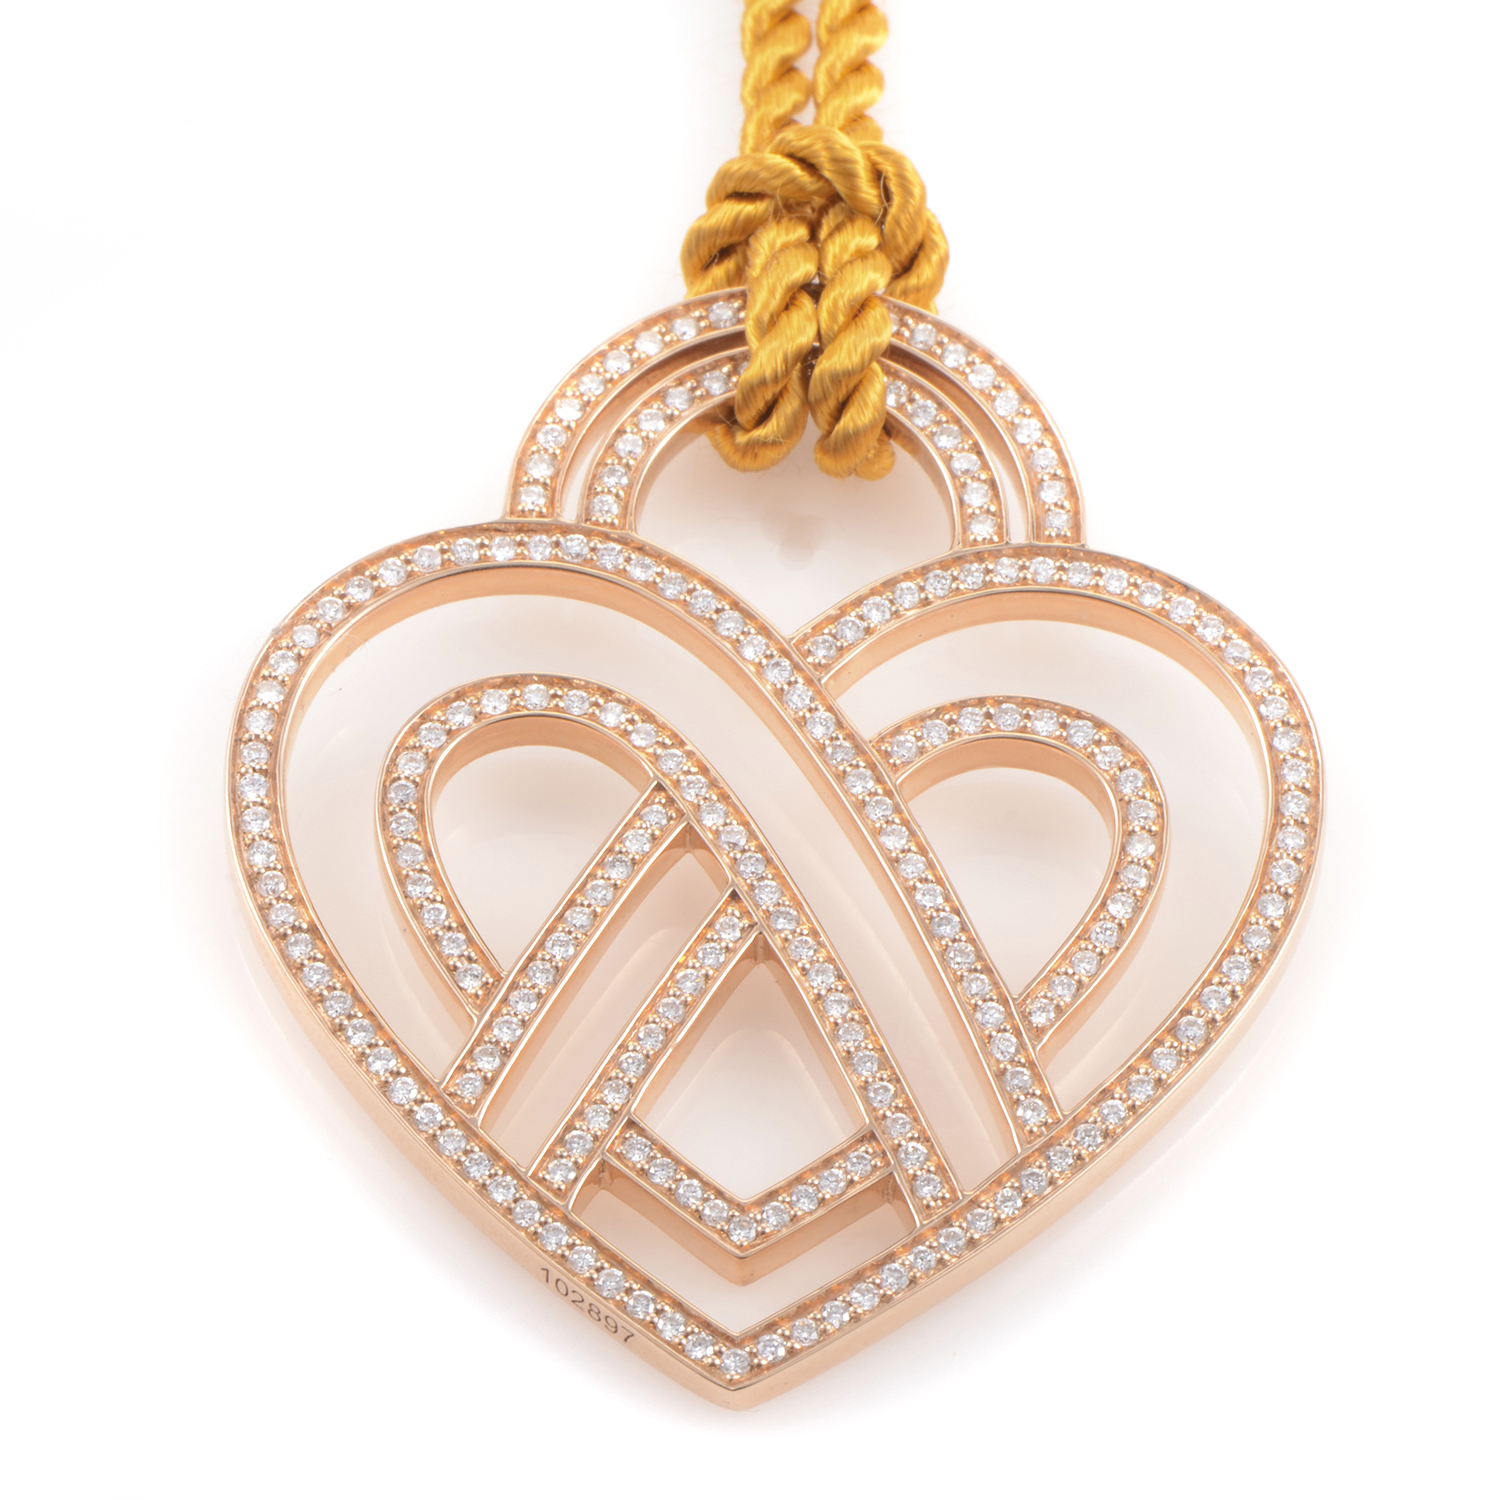 18K Rose Gold Diamond Heart Pendant & Cord Necklace PPC8752GLD